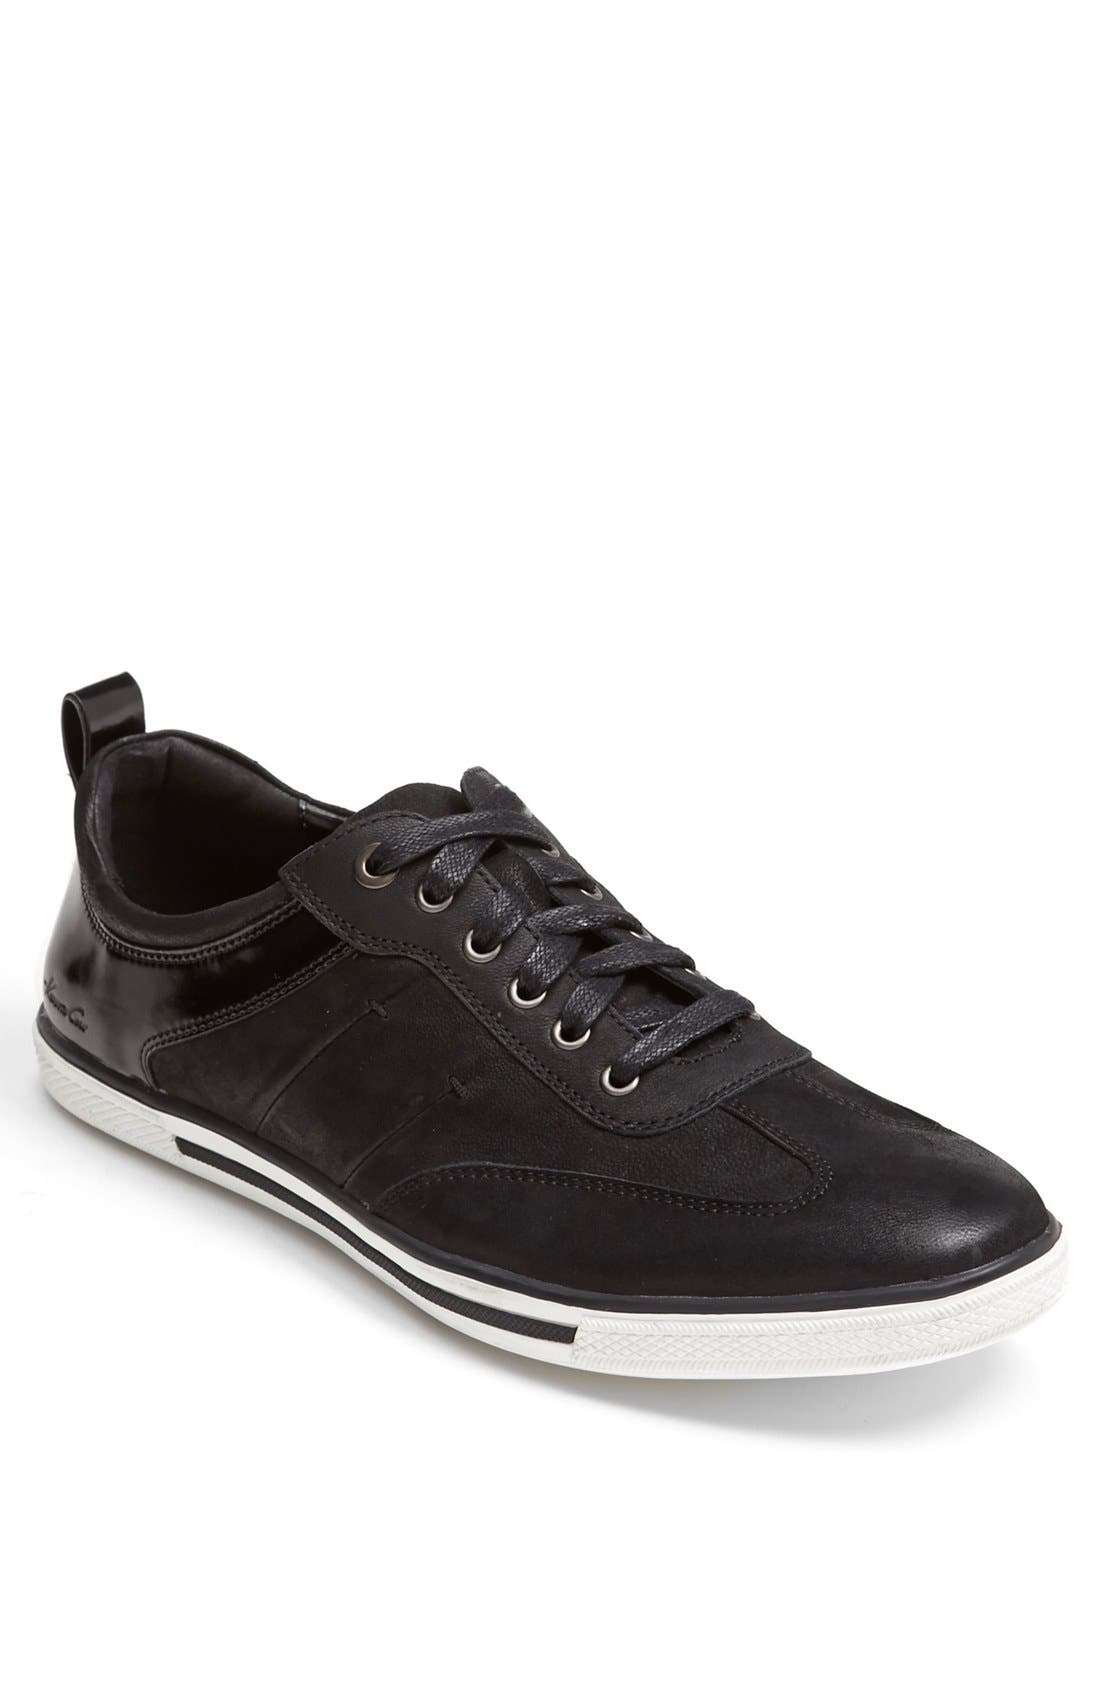 Alternate Image 1 Selected - Kenneth Cole New York 'Down the Hatch' Sneaker